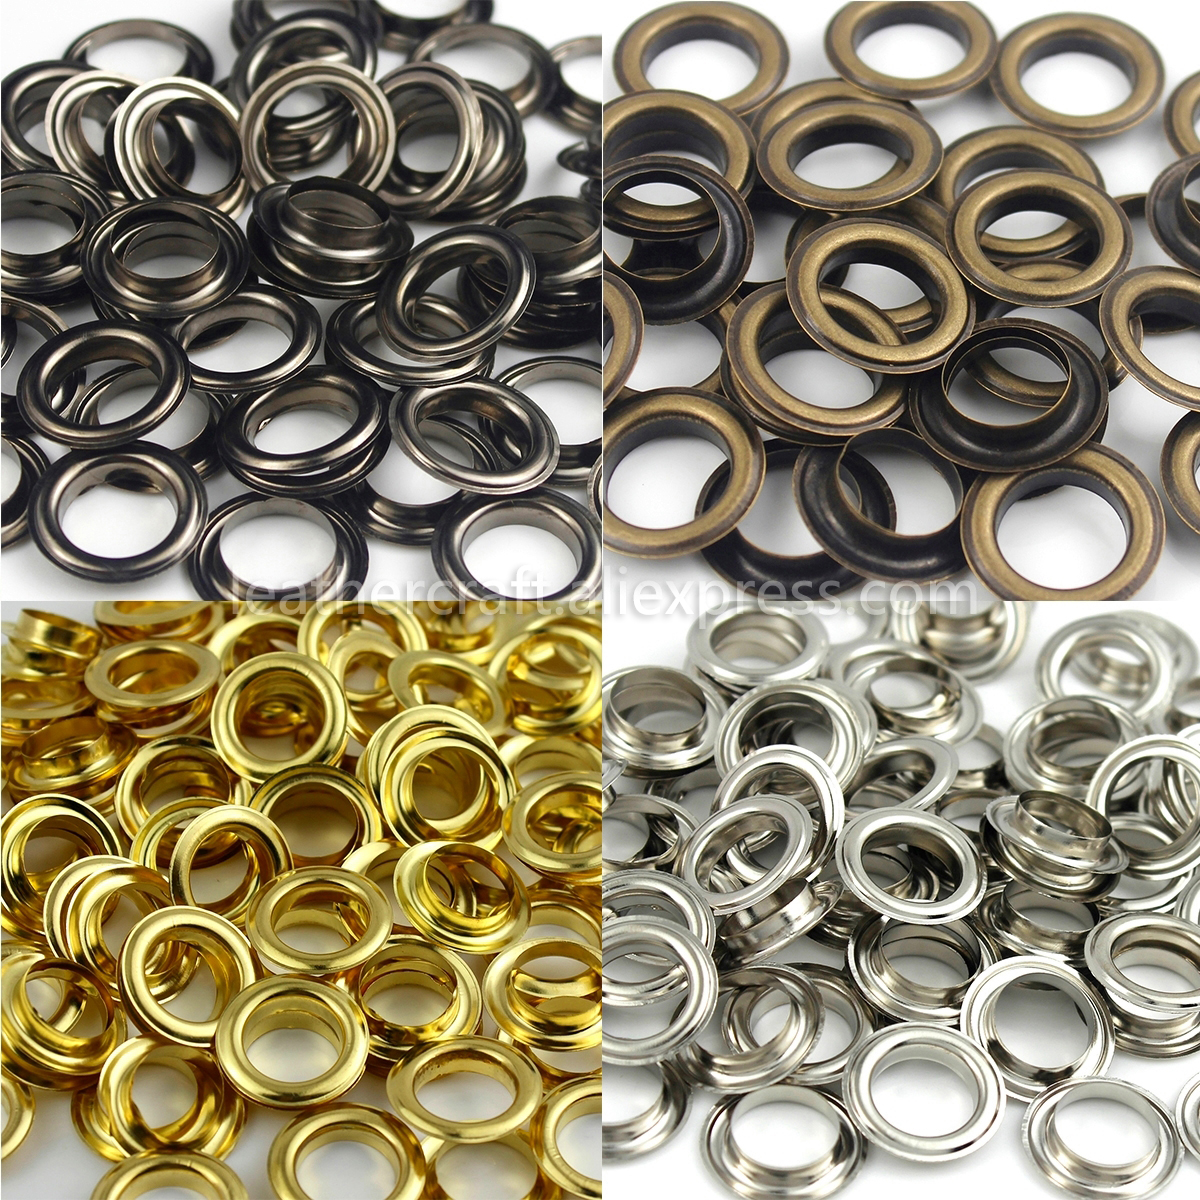 100pcs 8mm Iron Eyelet Grommets Silver Tone w Washers for Clothes Leather